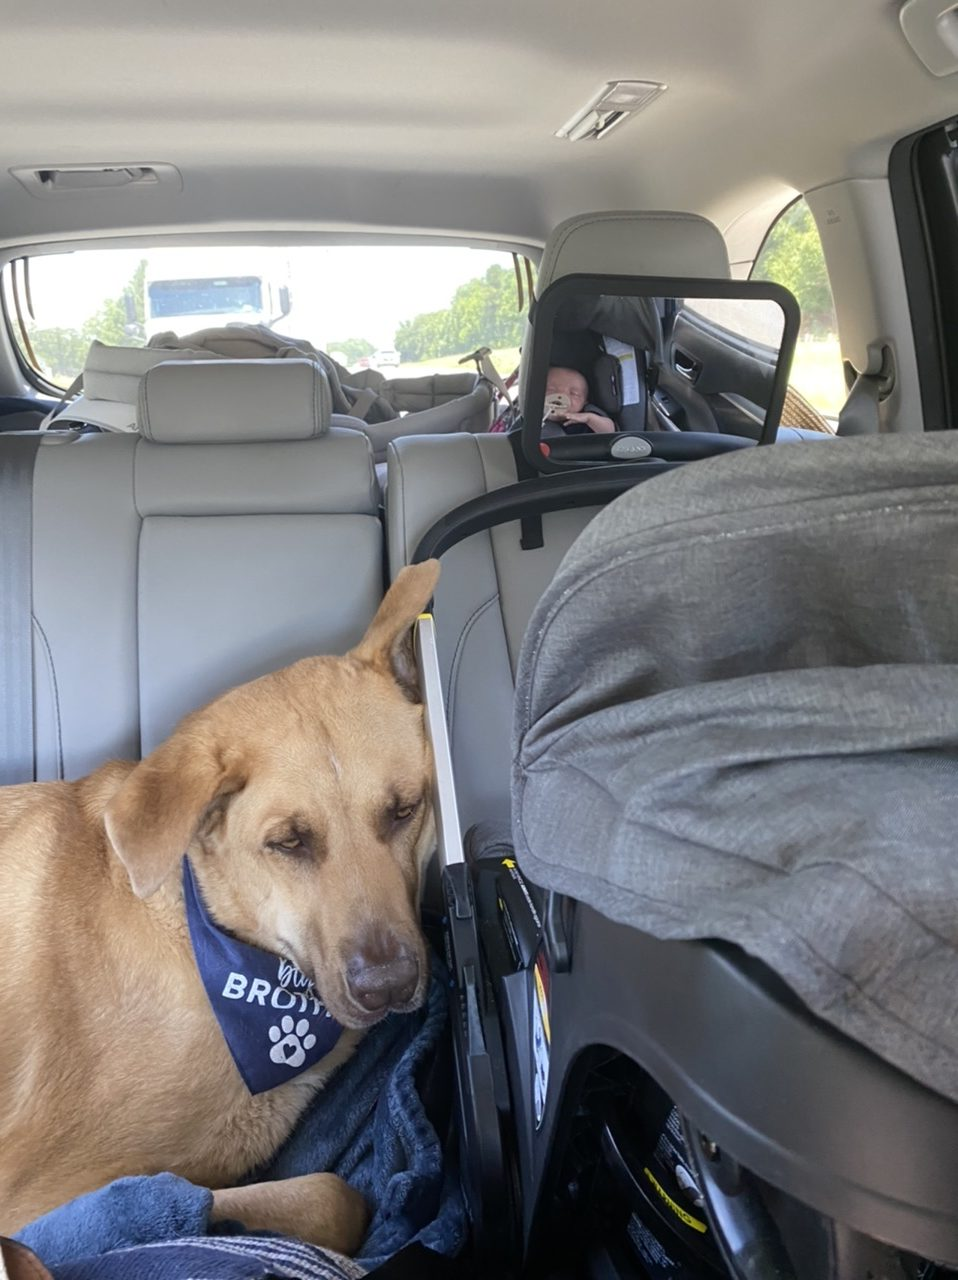 Doona travel stroller and car seat system coming in huge on our first long road trip